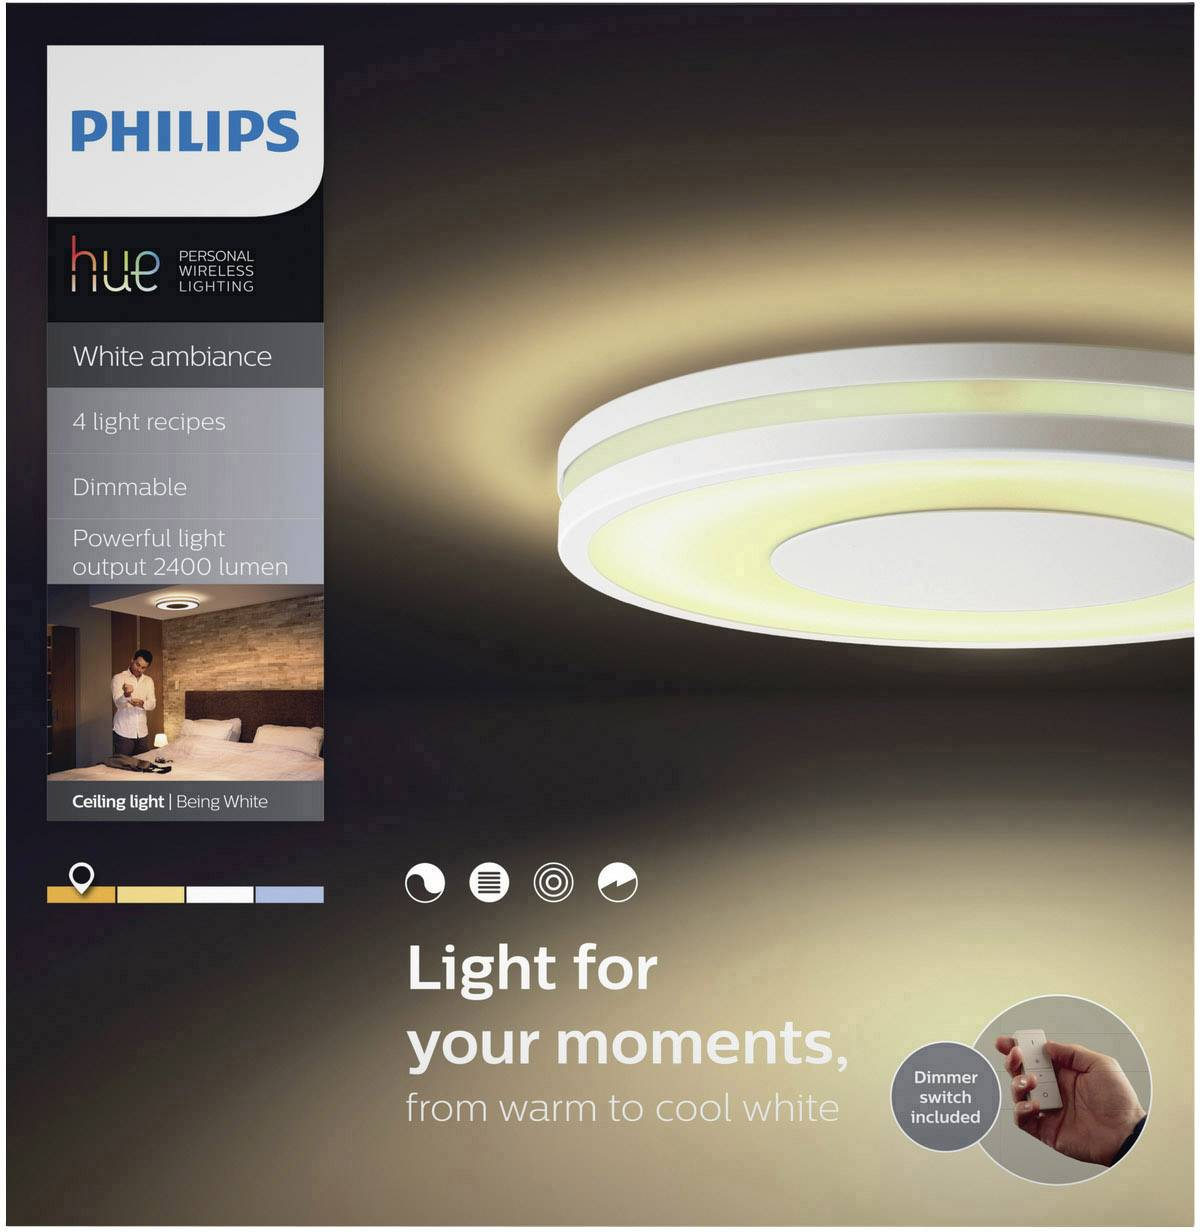 Philips Lampen Plafond Philips Lighting Hue Led Plafond En Wandlamp Being Led Vast Ingebouwd 32 W Warm Wit Neutraal Wit Daglicht Wit